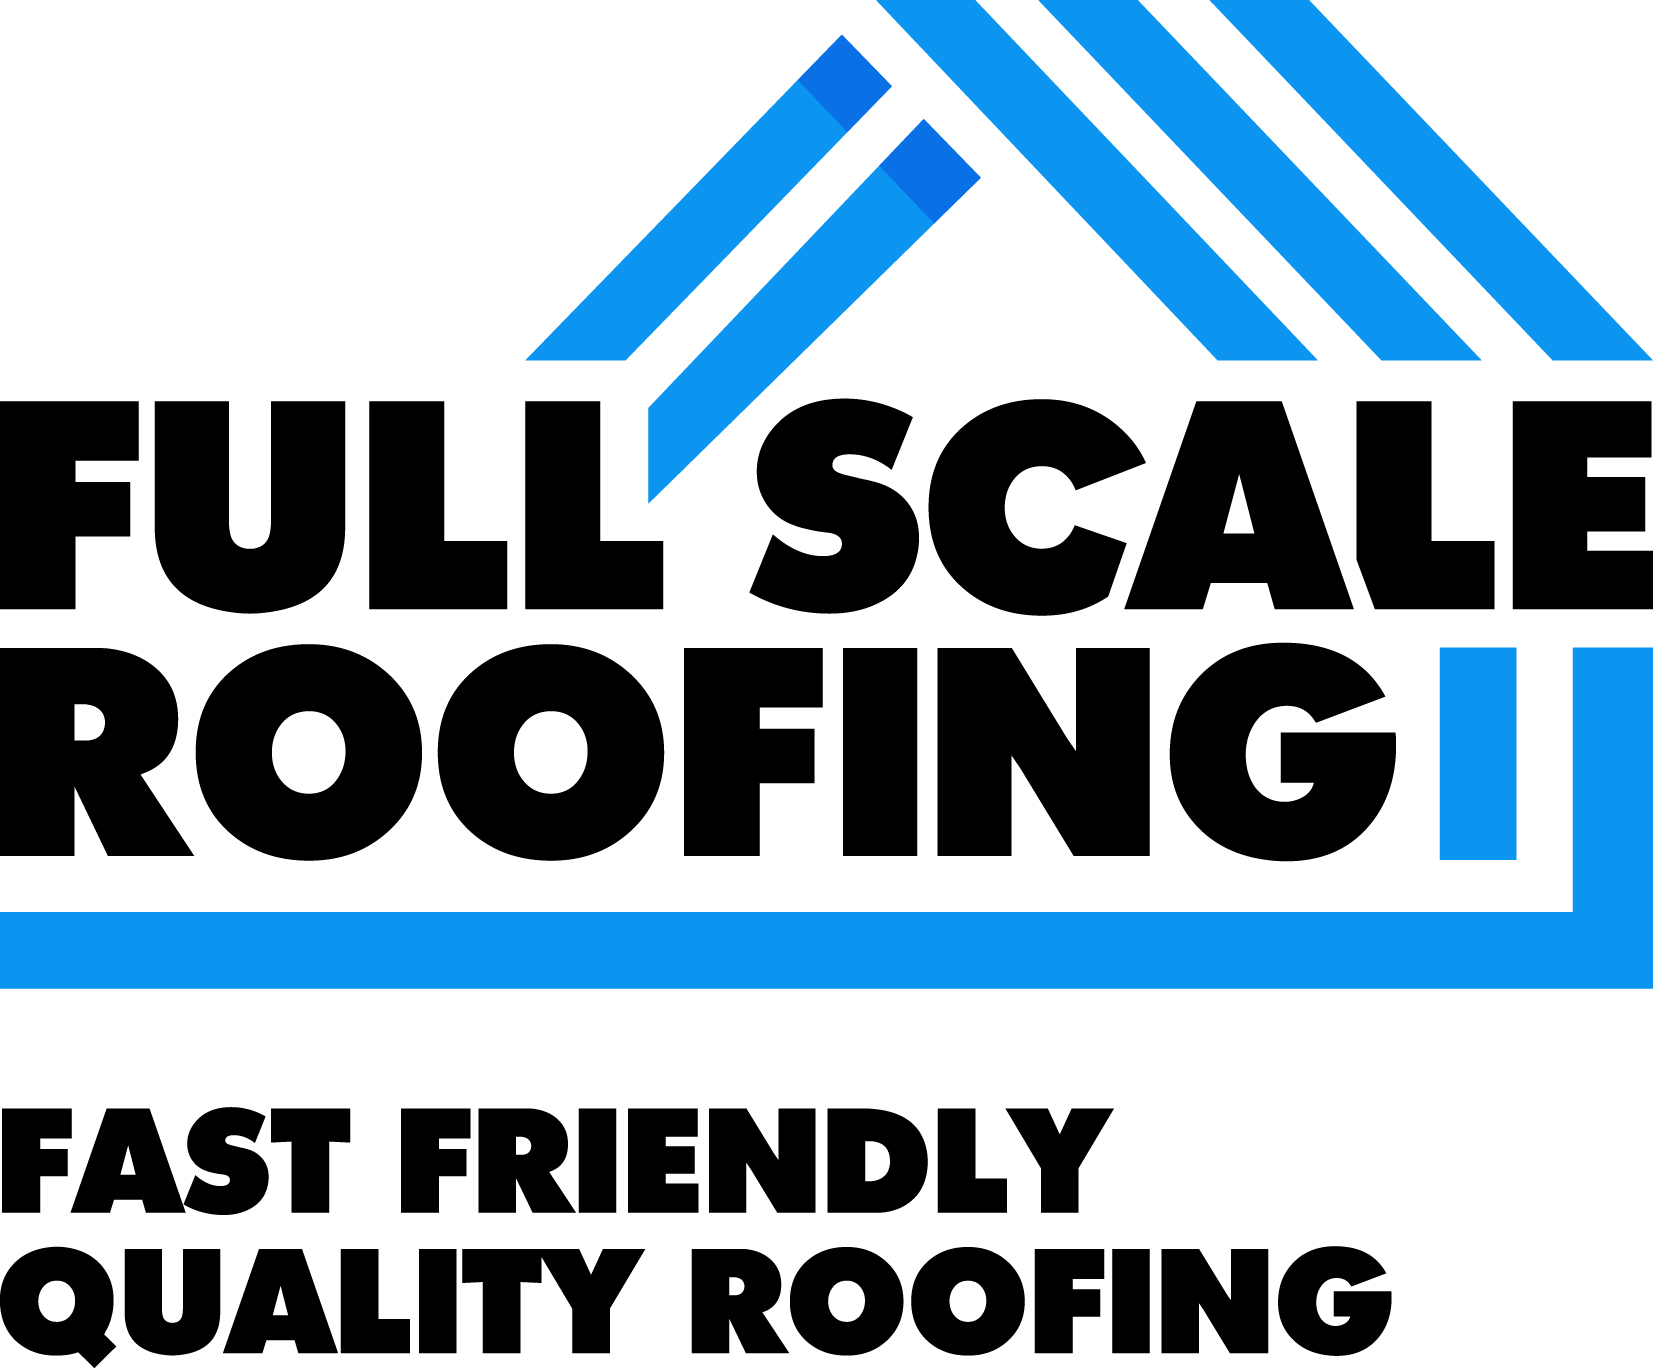 Full Scale Roofing